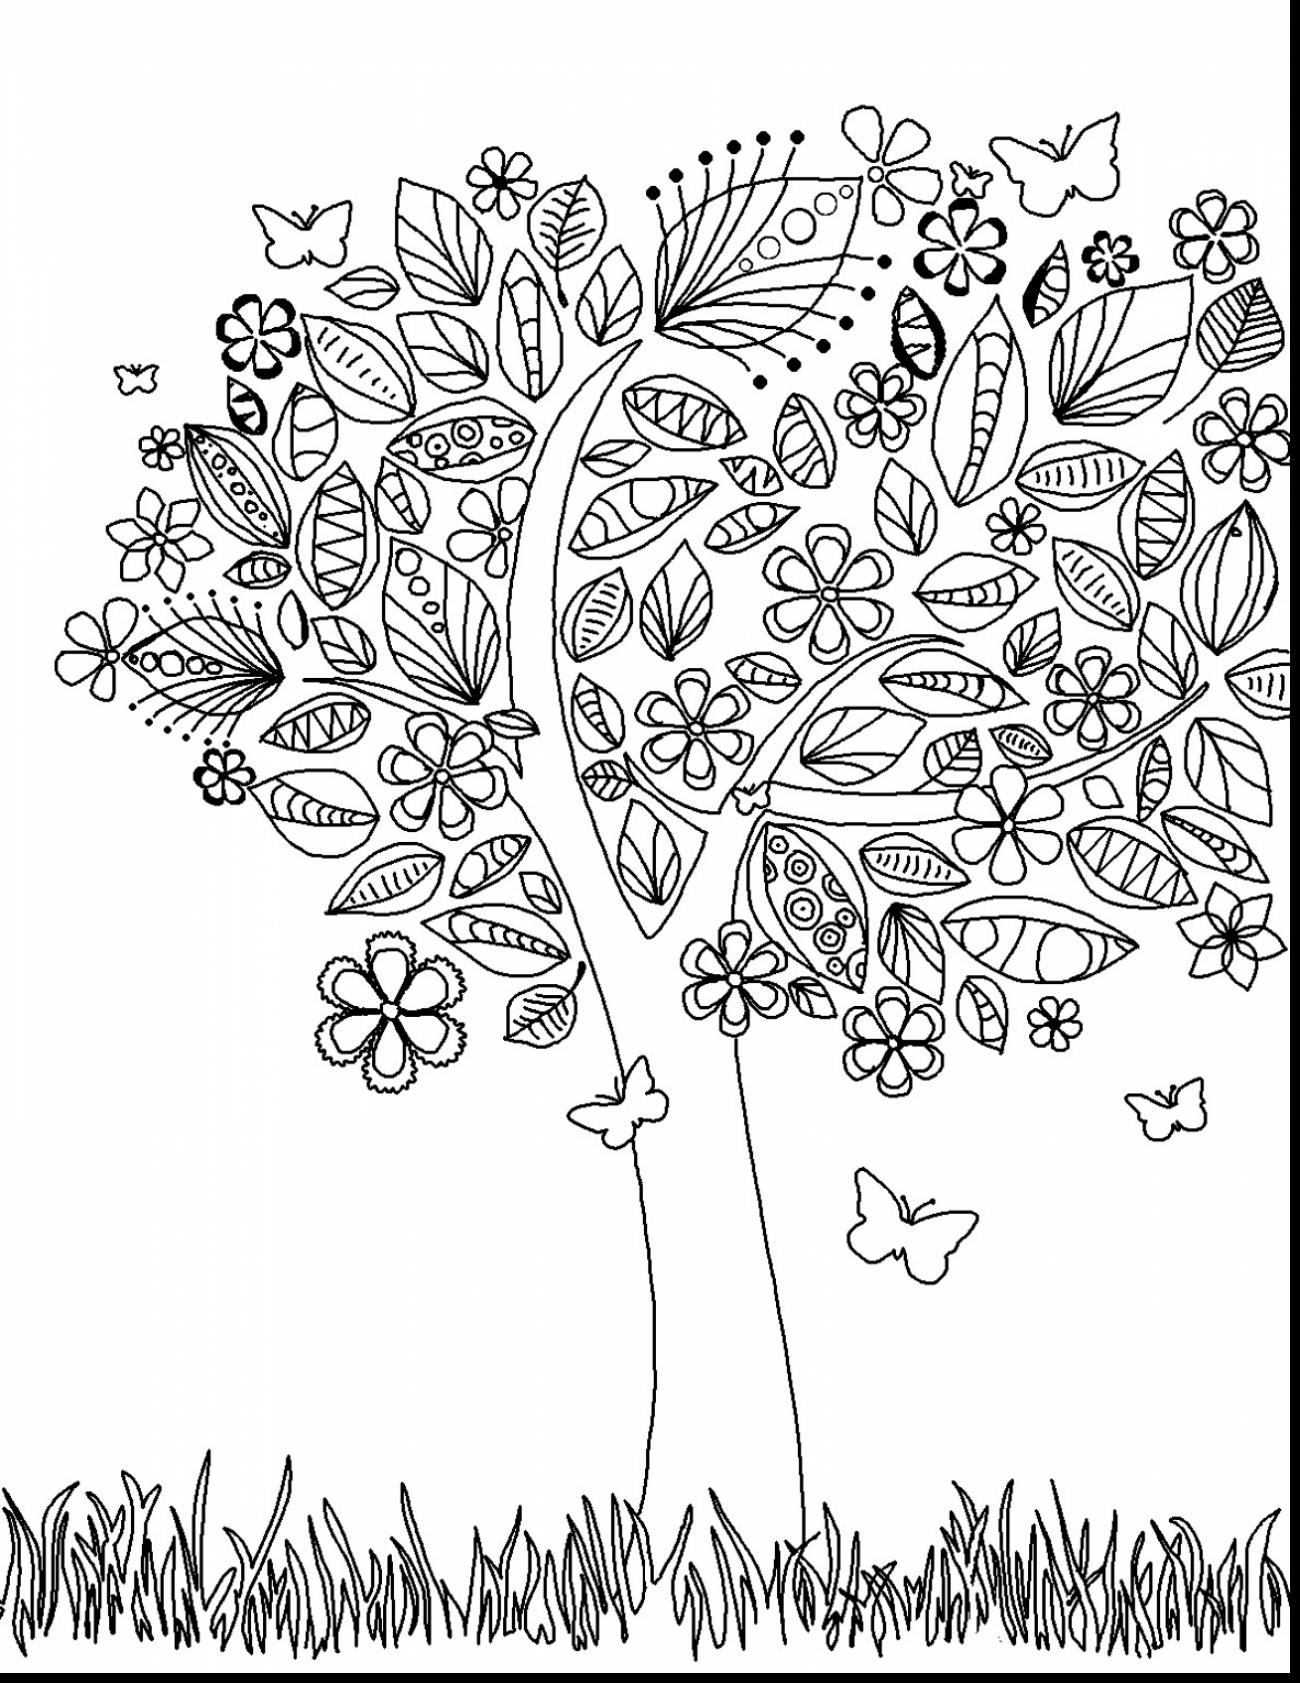 Hd Abstract Flower Coloring Pages Images Coloring Pages